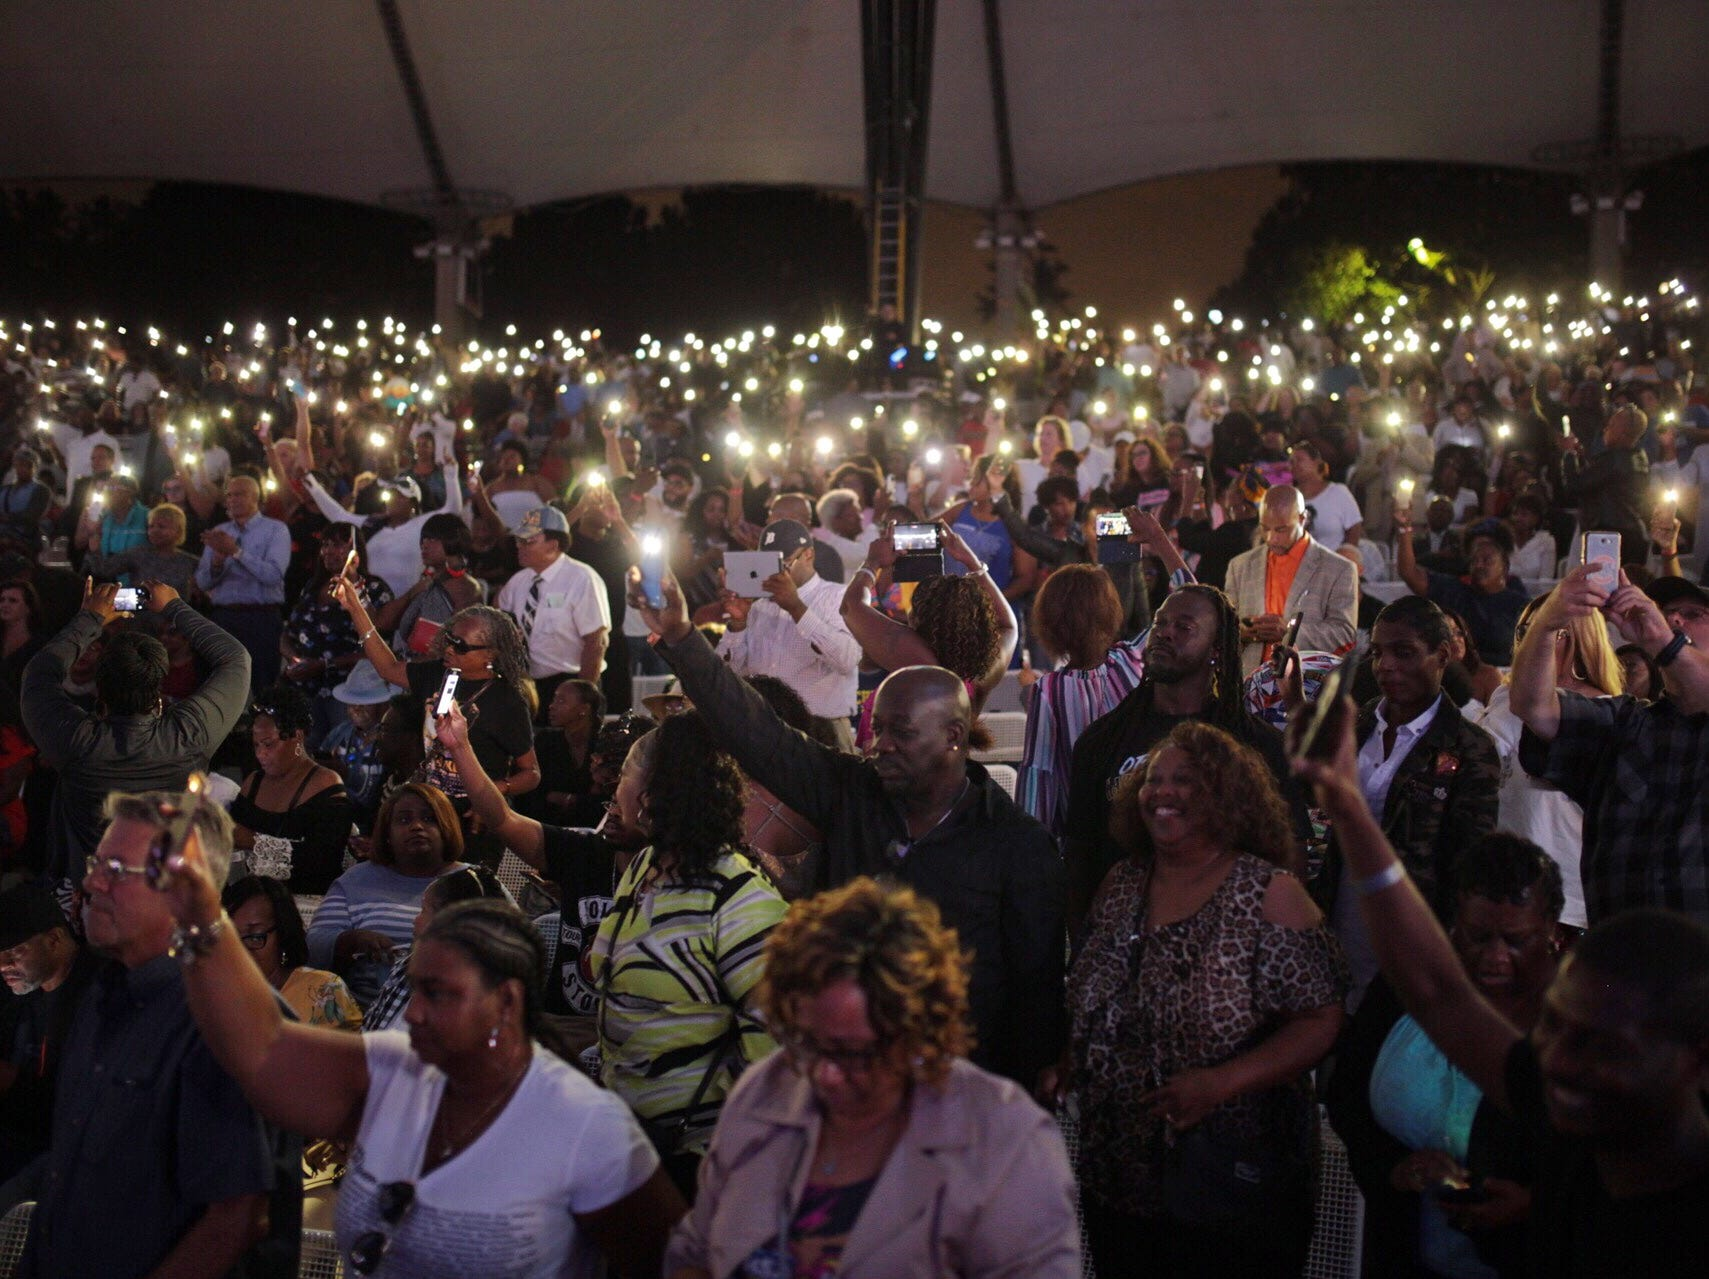 People hold their phones up during an Aretha Franklin tribute concert at Chene Park Amphitheatre in Detroit on Thursday, August 30, 2018.